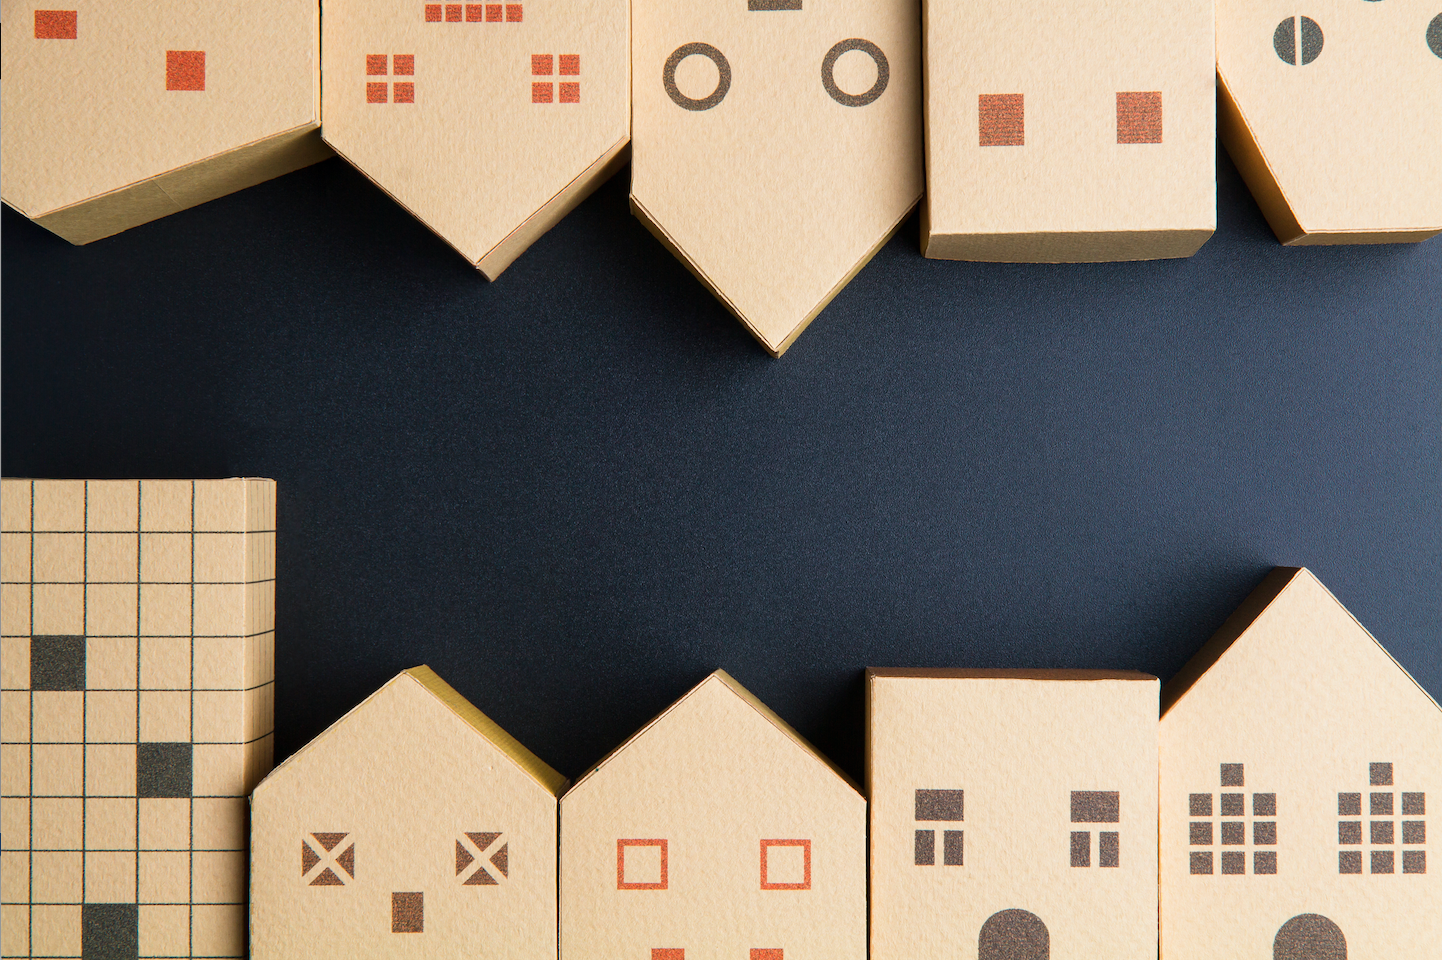 Cardboard boxes shaped like houses on a black background